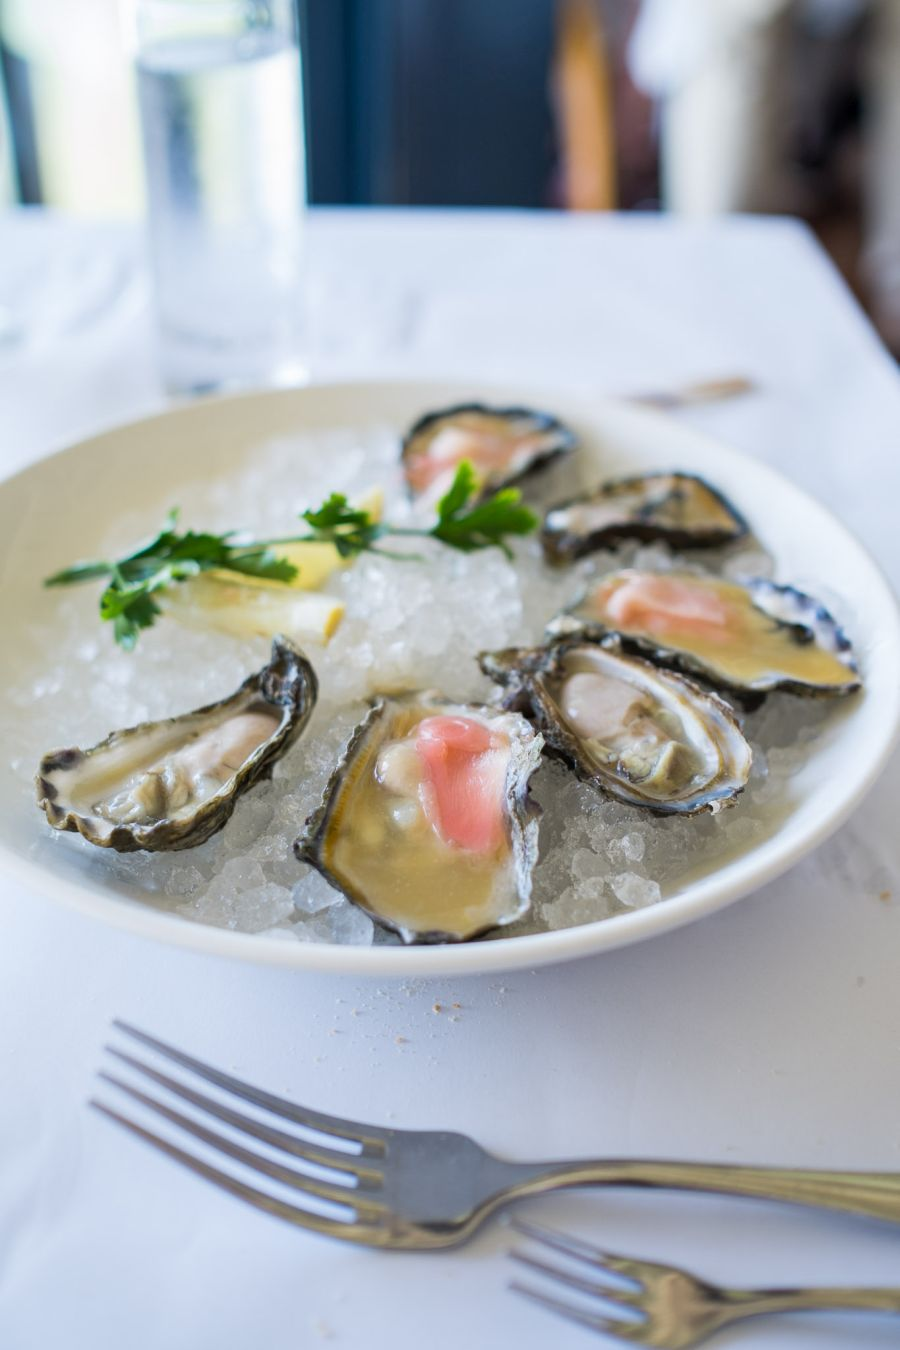 South Australian oysters - natural with fresh lemon (AU$3 each), miso and ginger (AU$4 each)